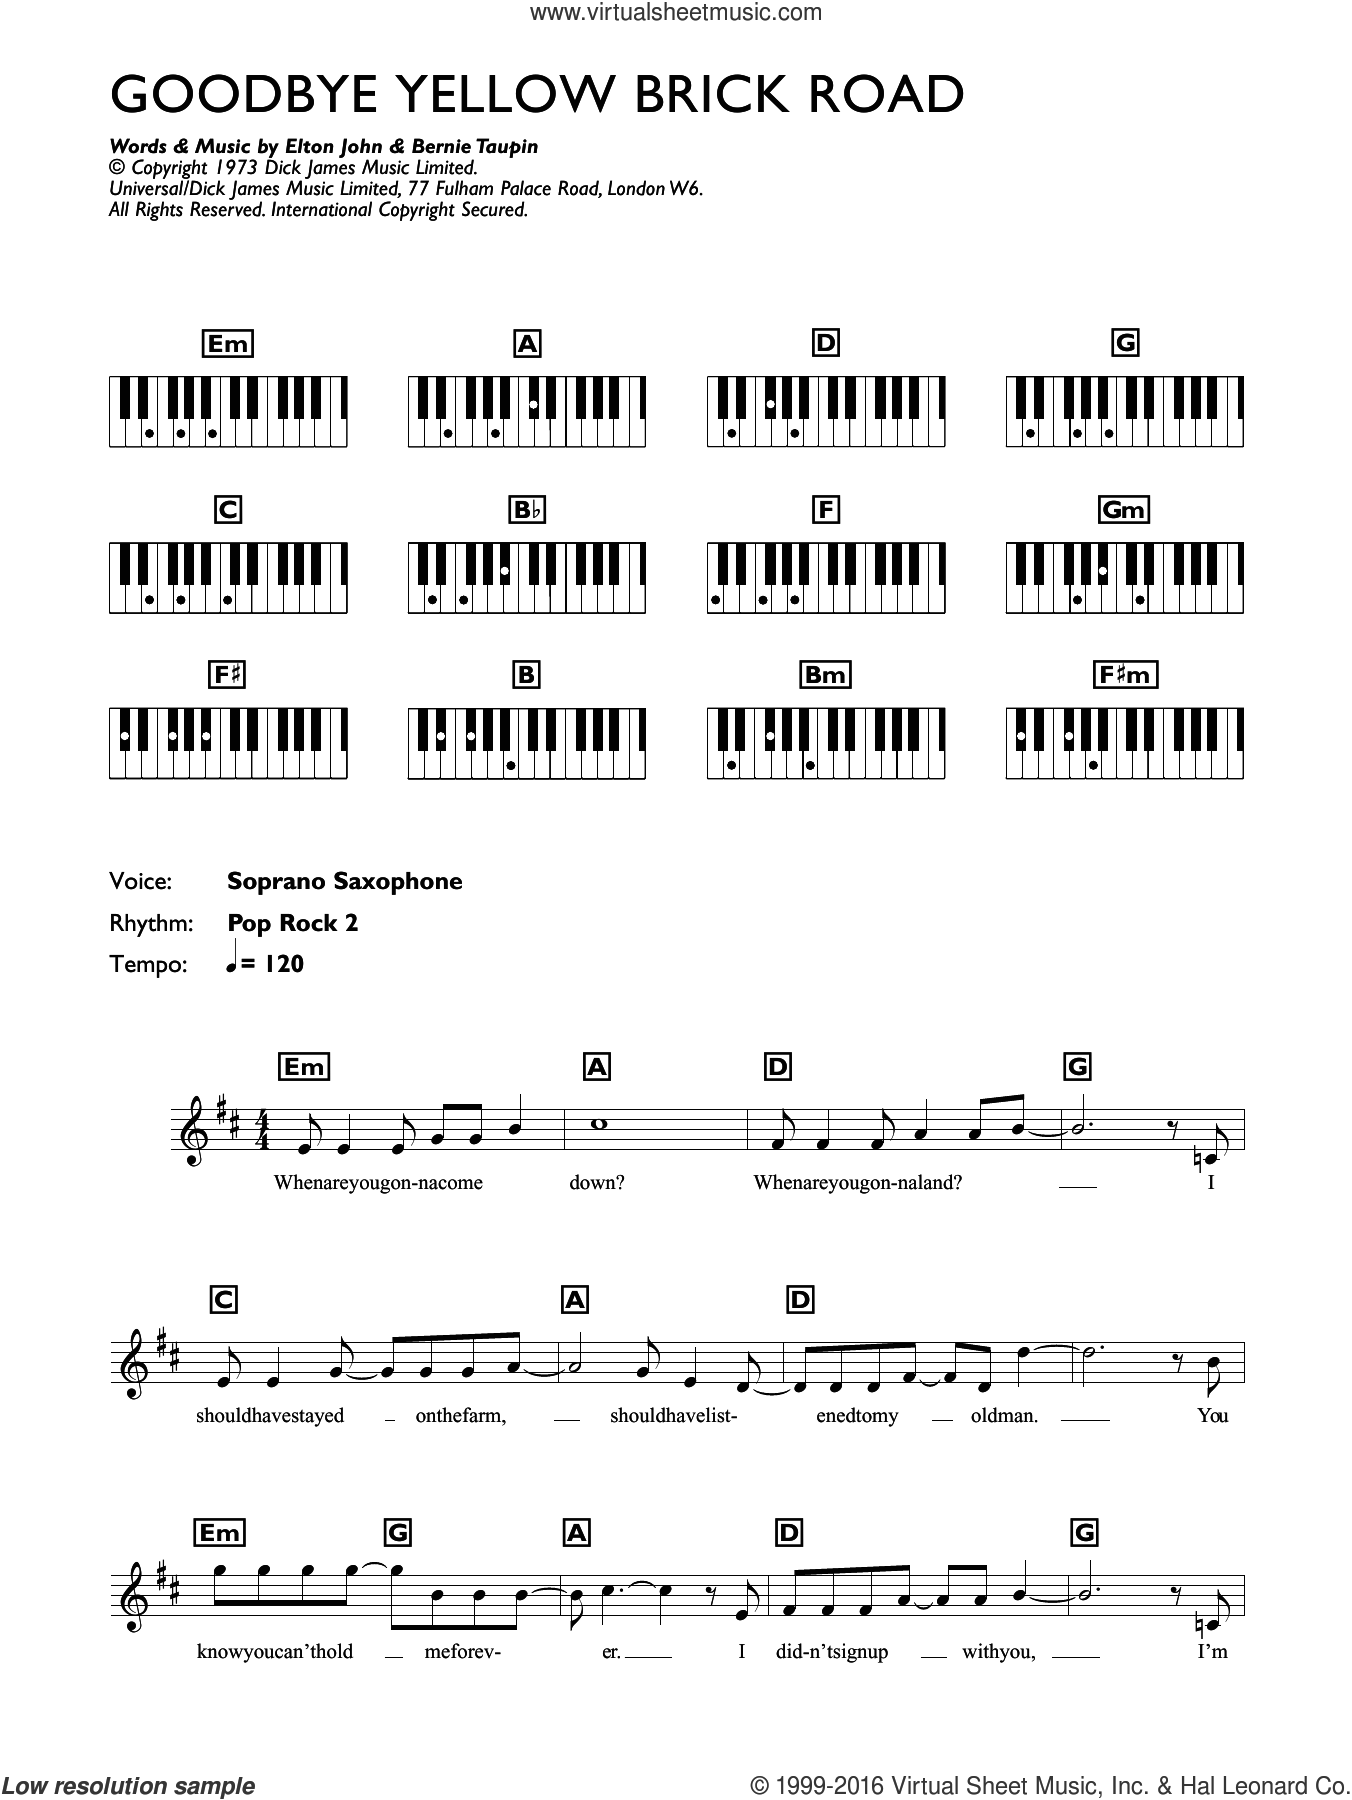 John - Goodbye Yellow Brick Road sheet music for piano solo (chords, lyrics, melody)